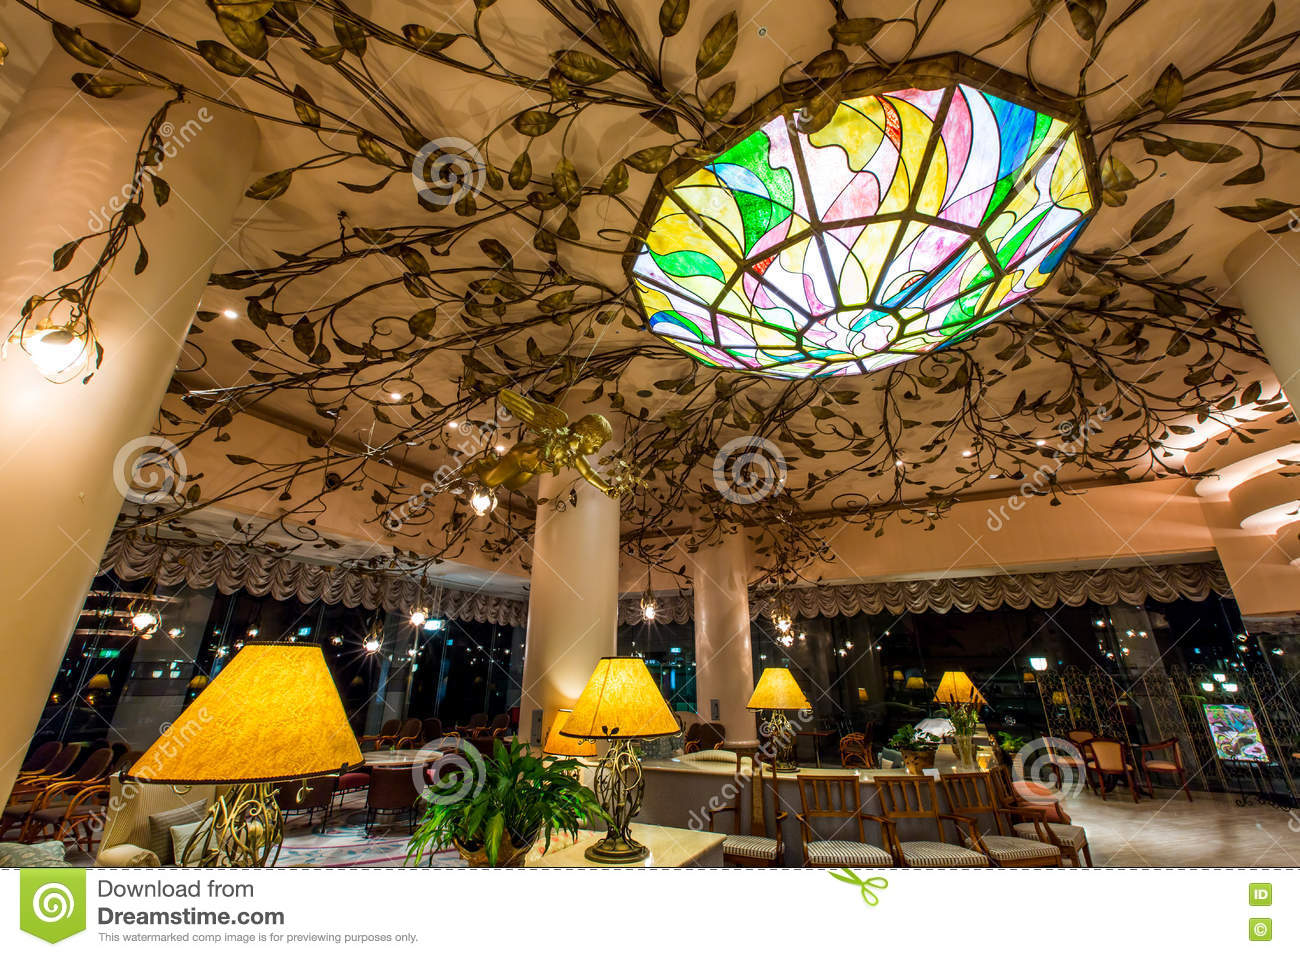 Palm De Yume Garden Hotel Japan Editorial Stock Photo - Image of ...